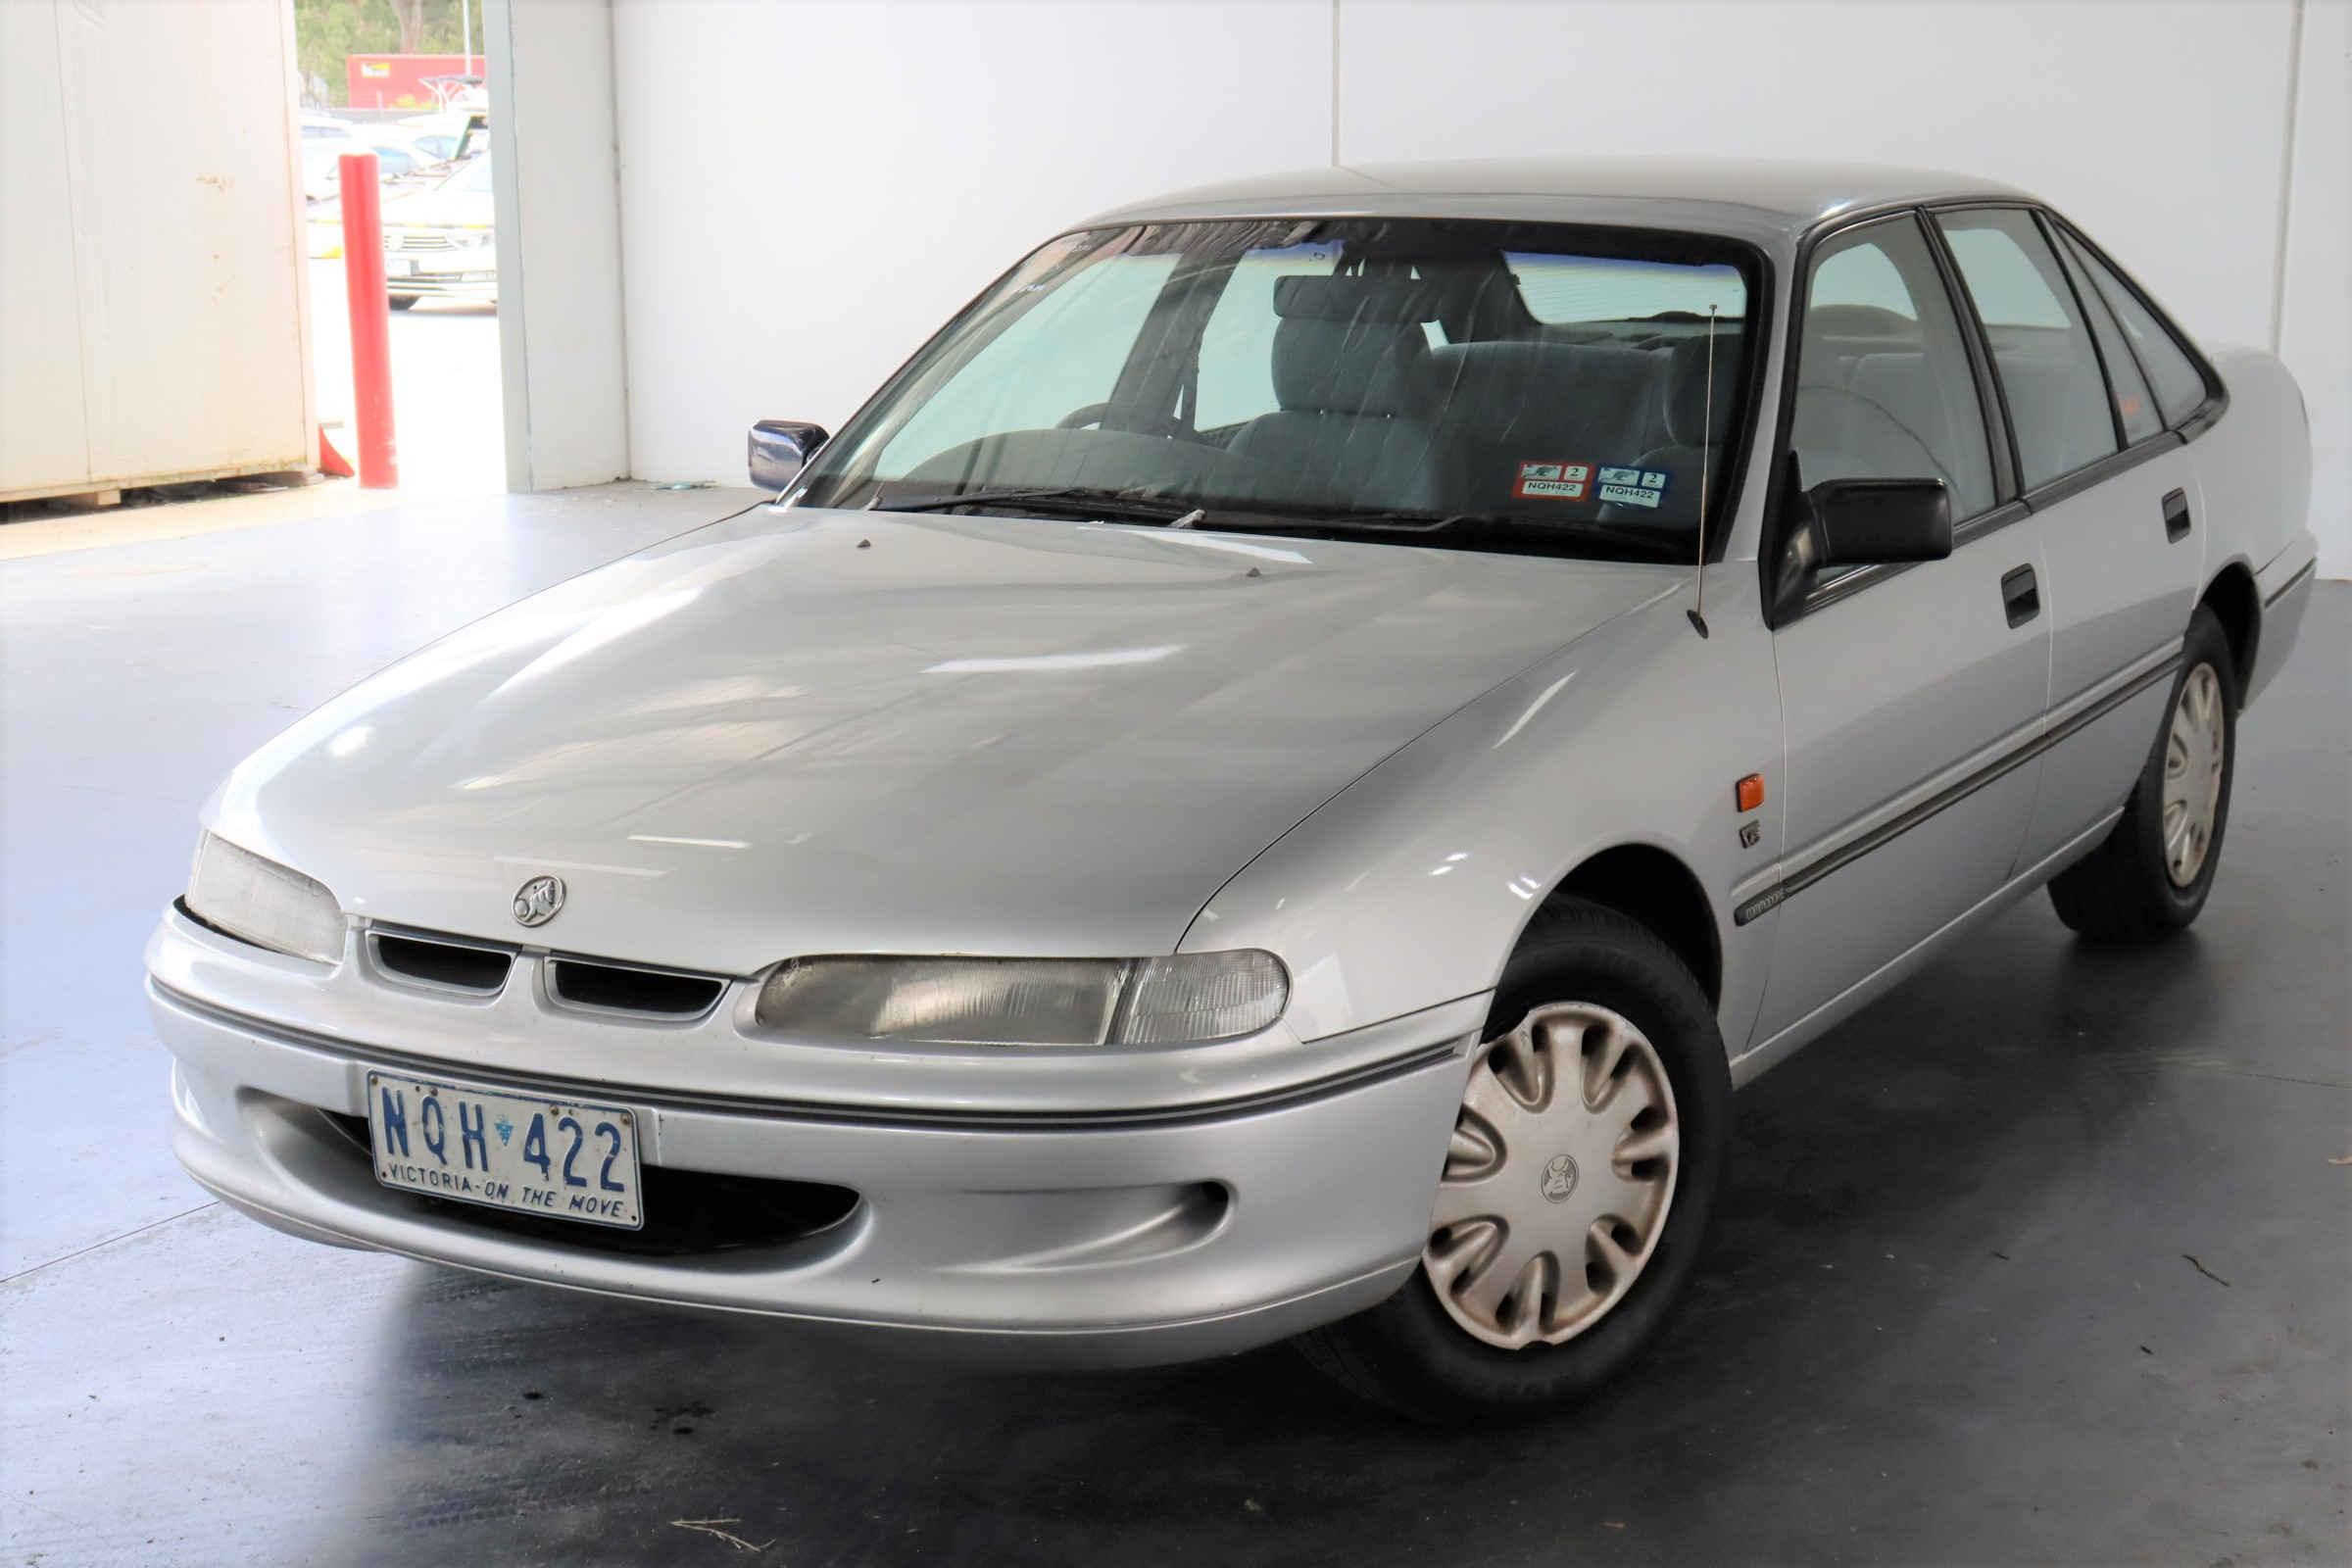 1996 Holden Commodore Executive VS Automatic Sedan